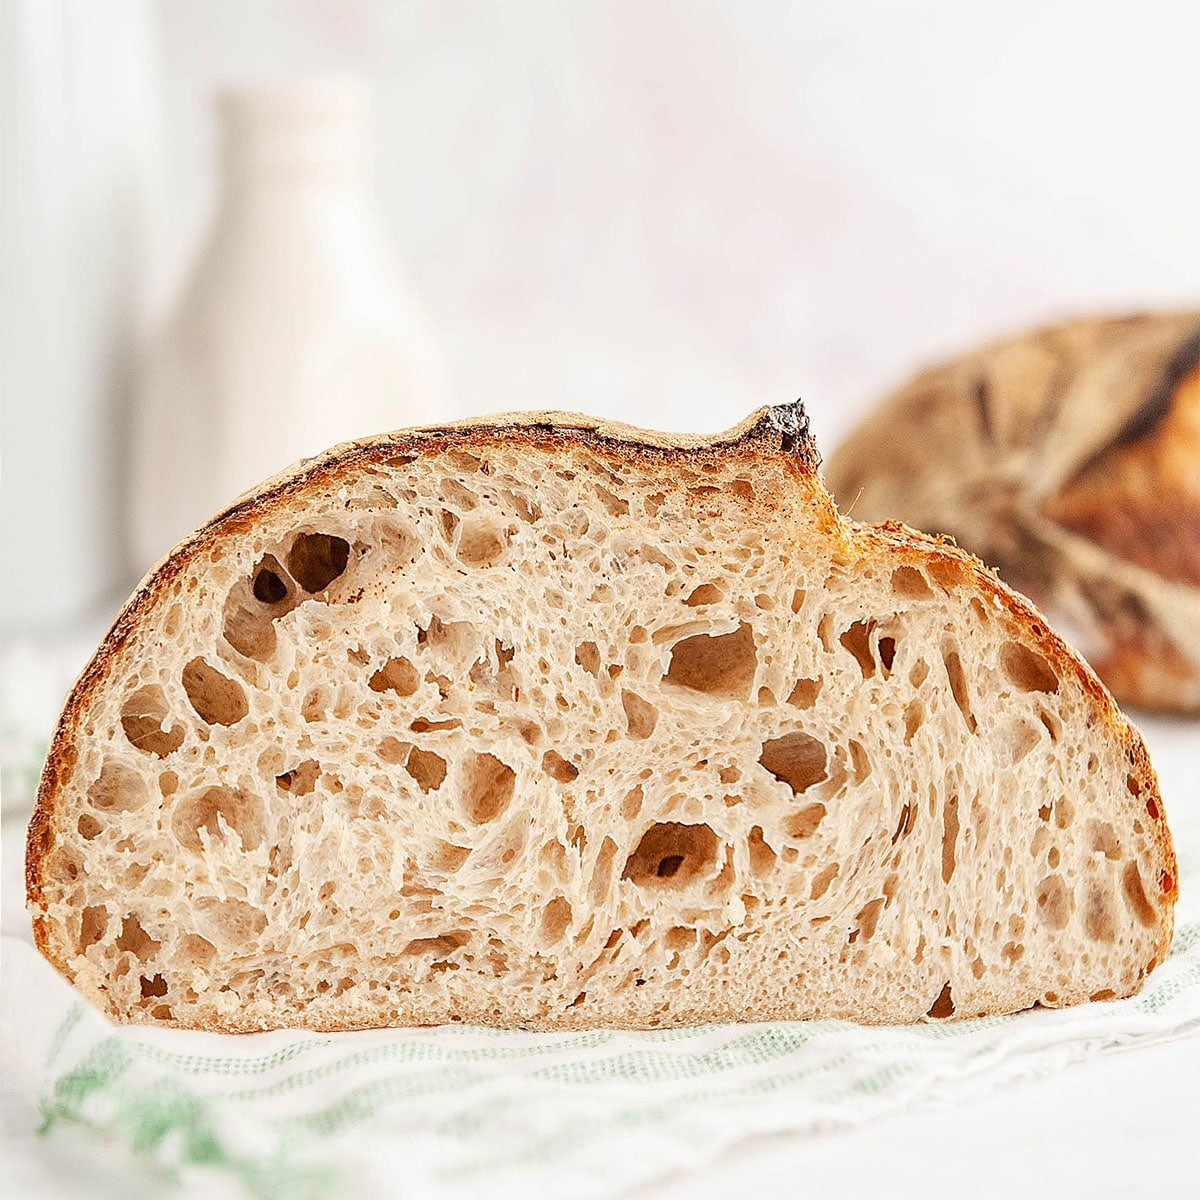 loaf of sourdough bread cut in half on white background